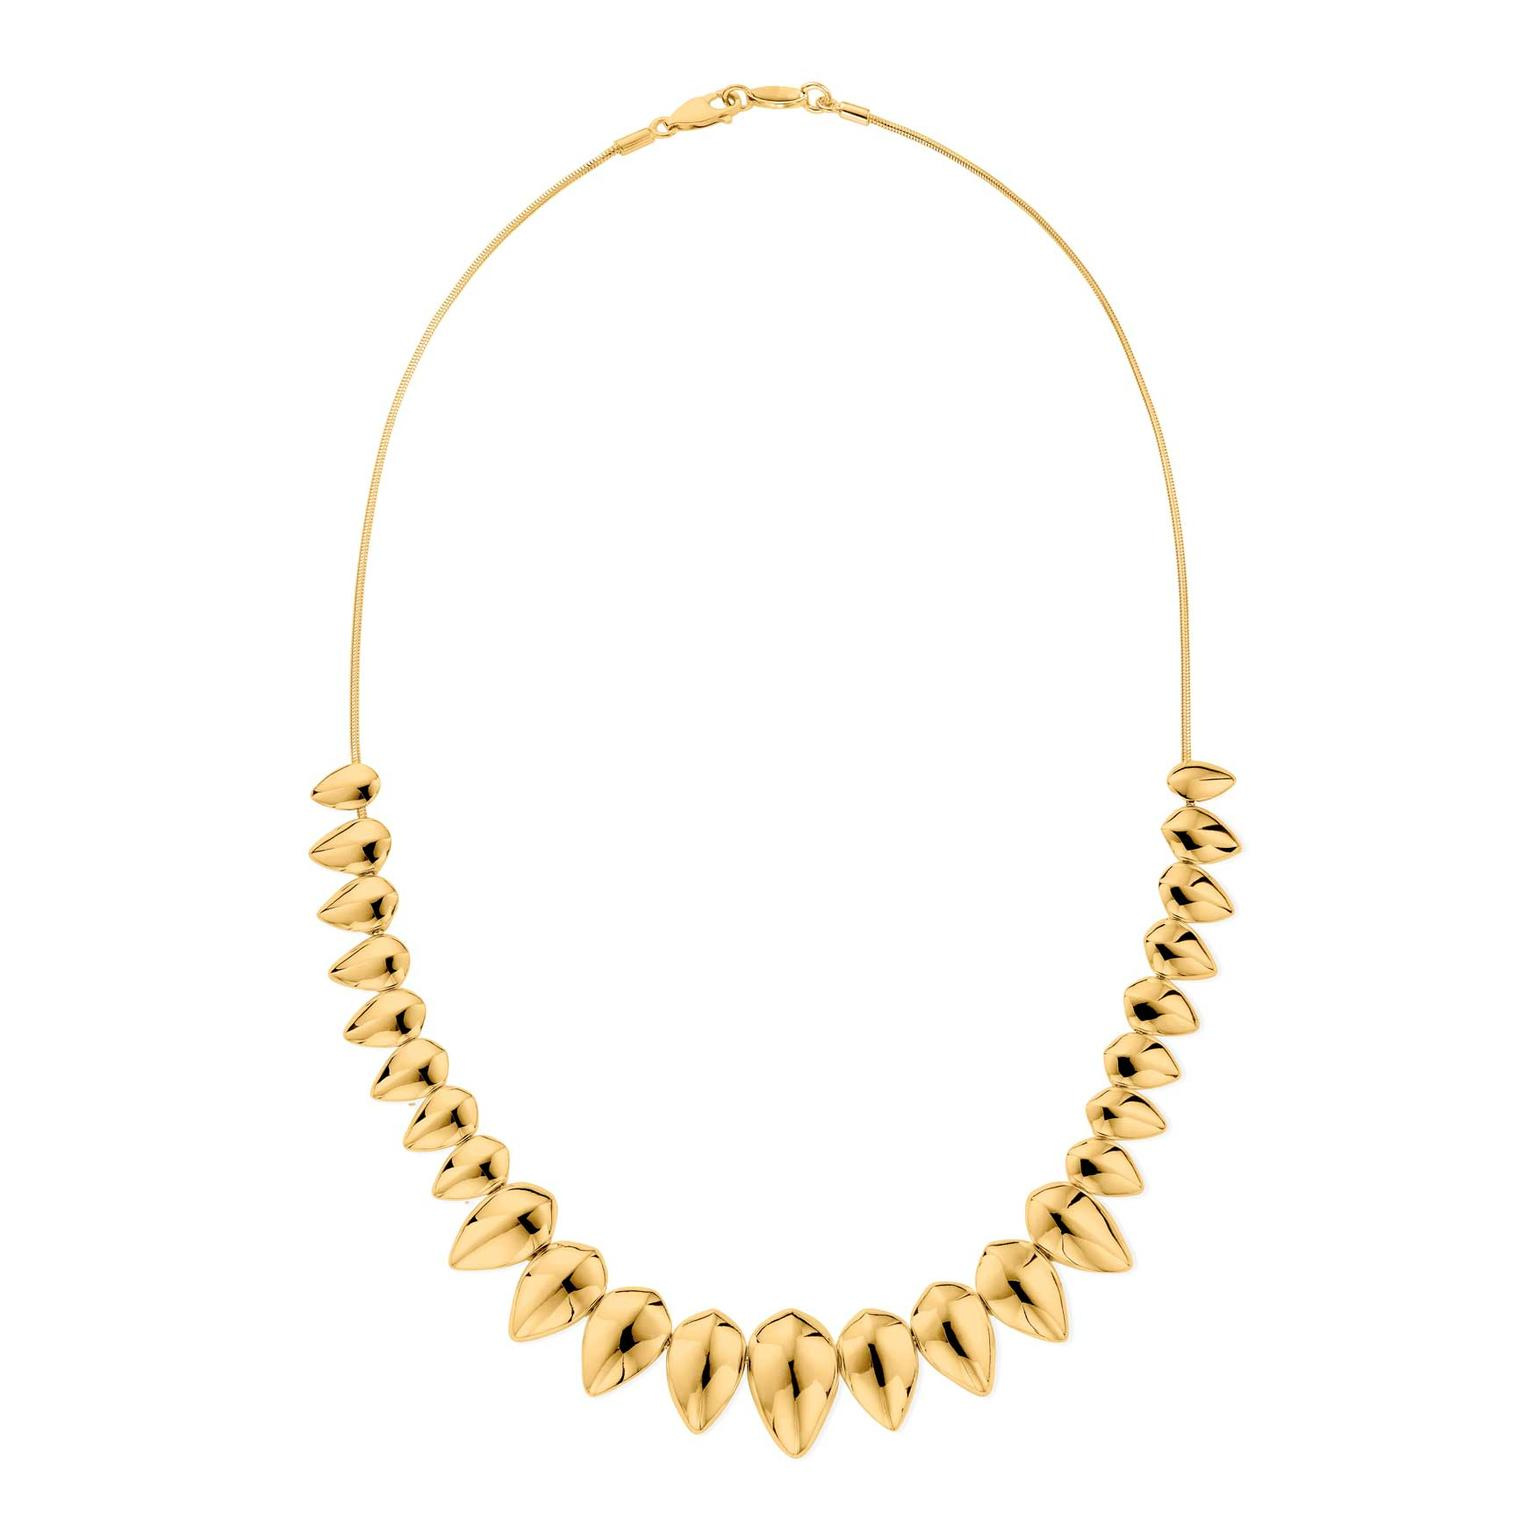 Patrick Mavros Pangolin yellow gold necklace